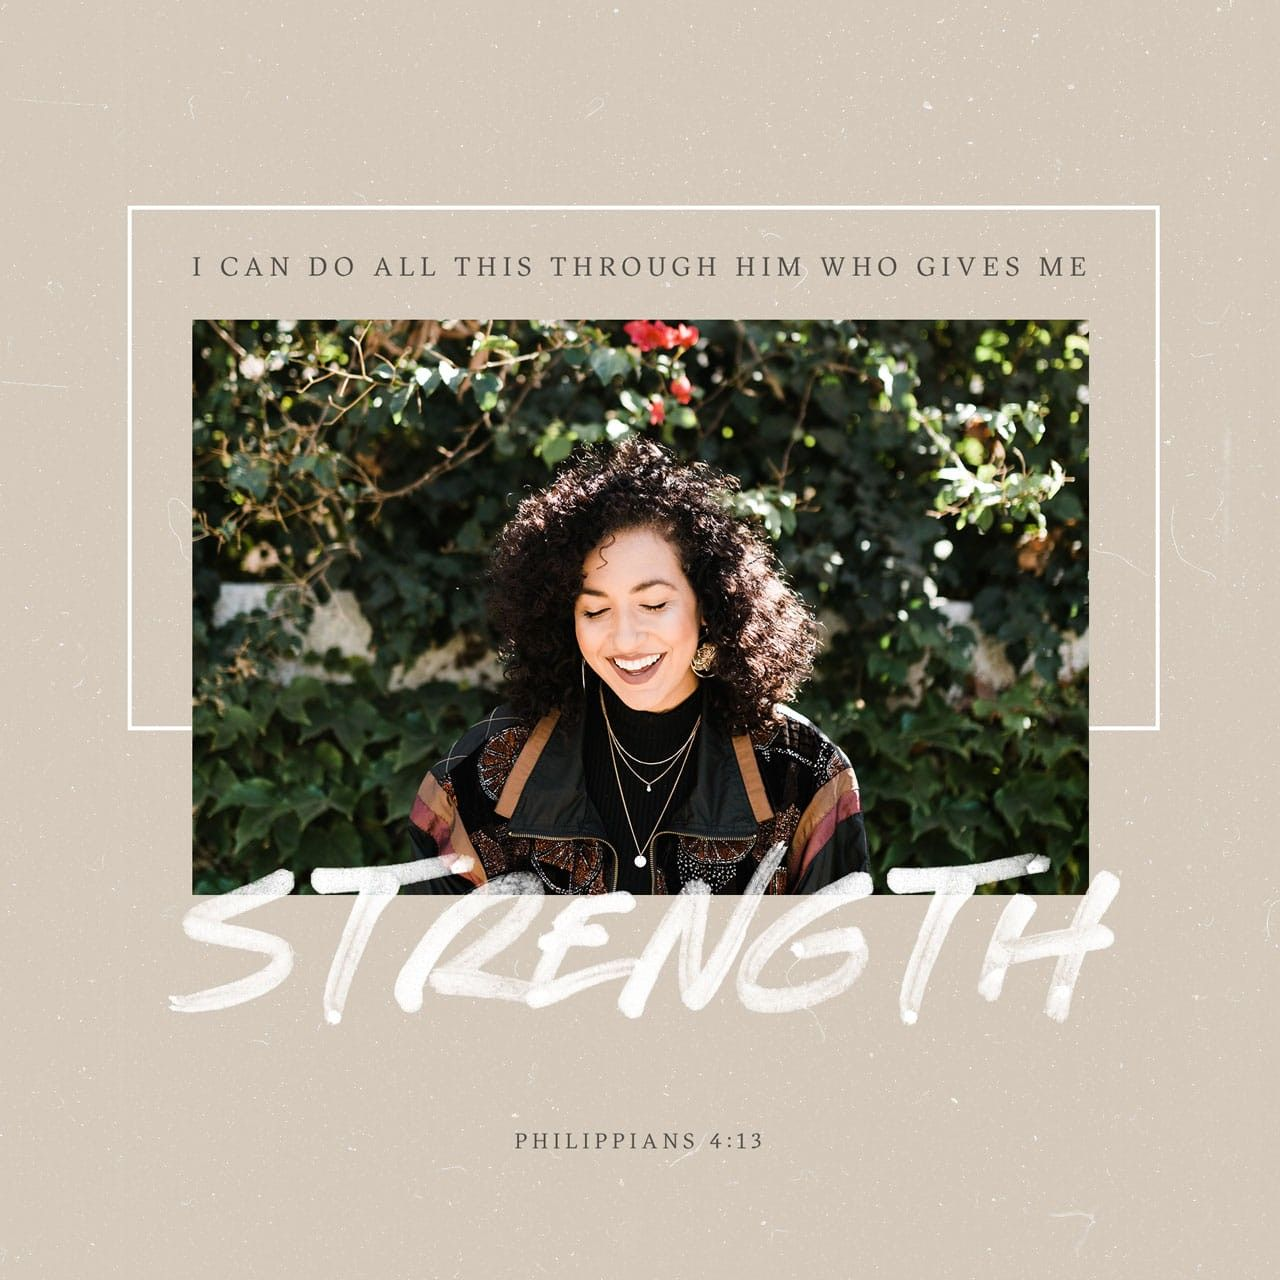 Pin By Adrienne Nicole Williams On The Word In 2020 Philippians